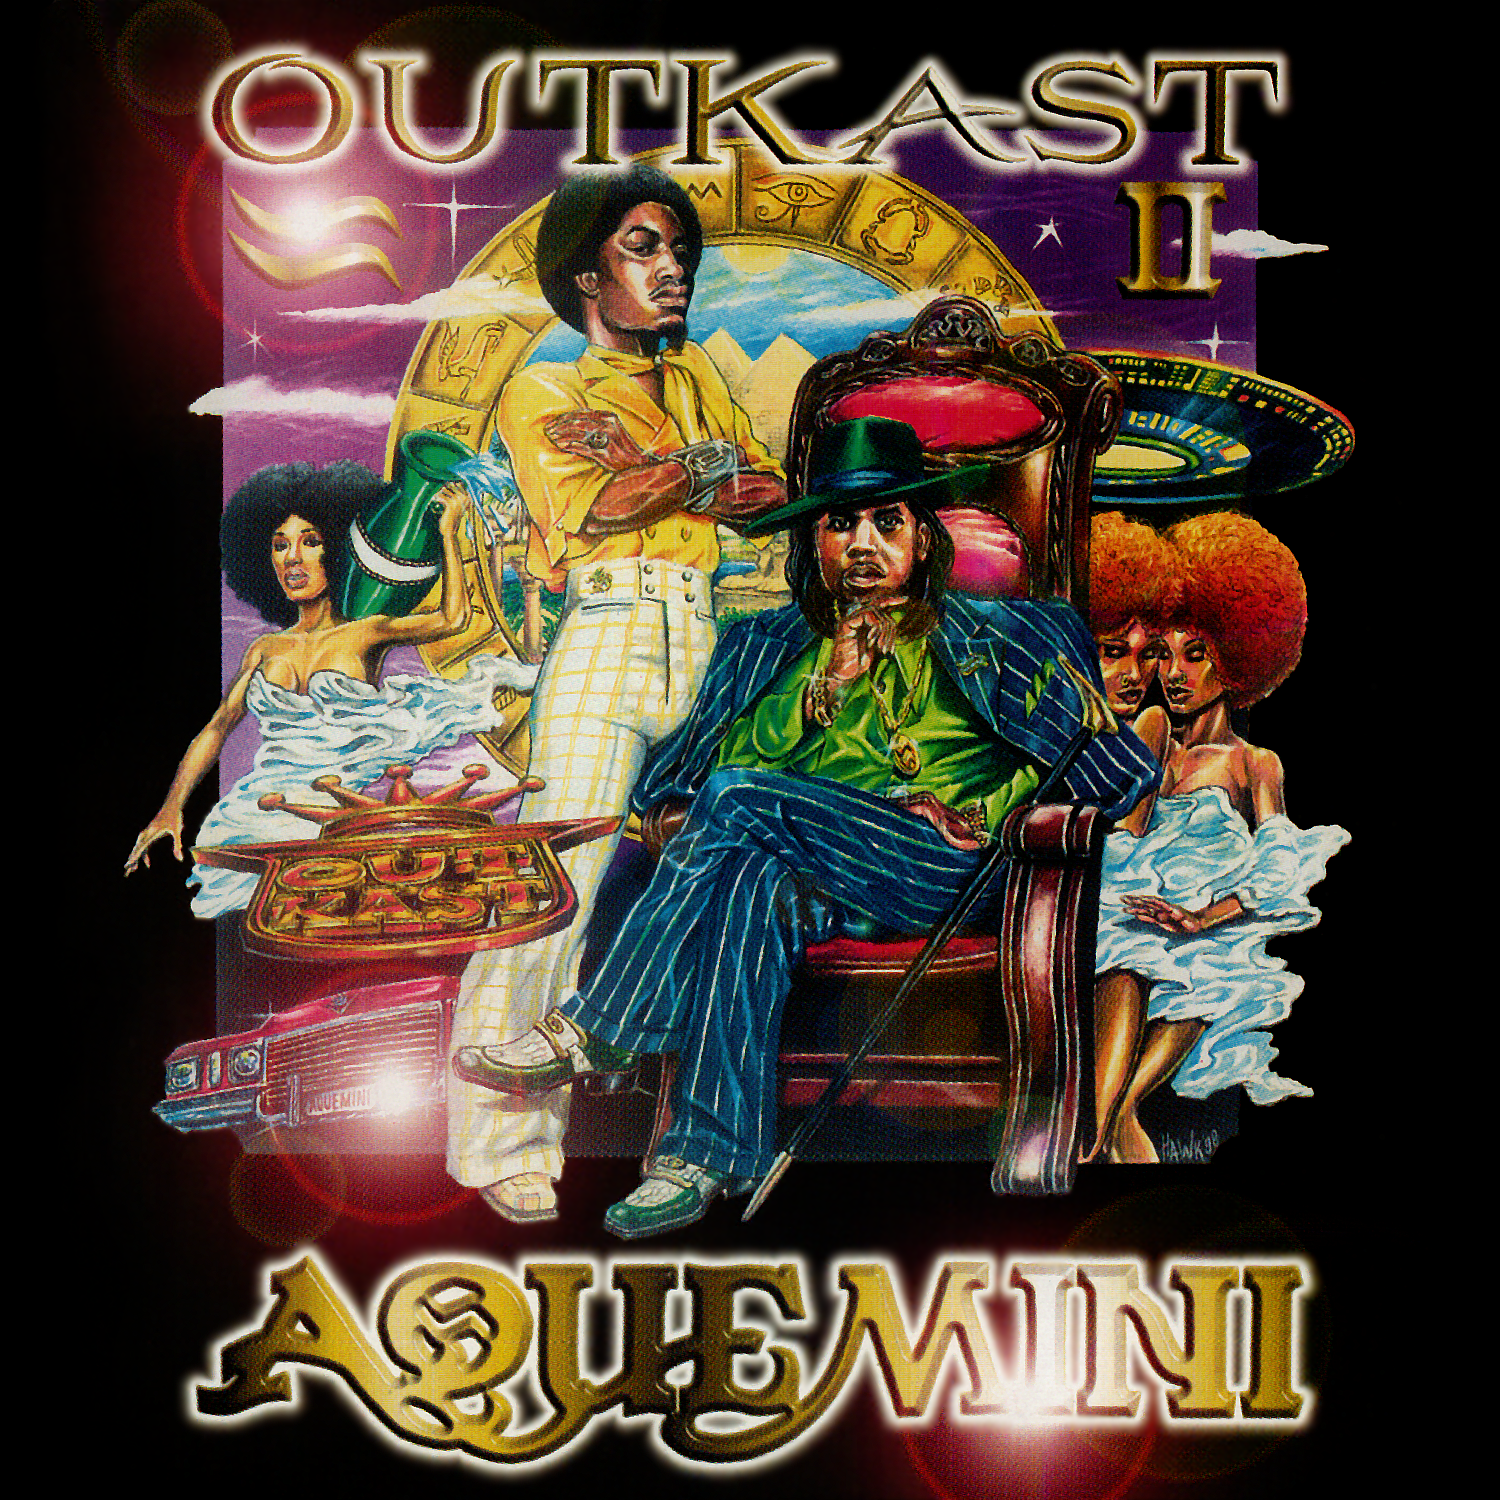 On September 29, 1998, Outkast's Aquemini came out the same day as A Tribe Called Quest's The Love Movement, Brand Nubian's The Foundation and Jay-Z's Vol. 2, Hard Knock Life.